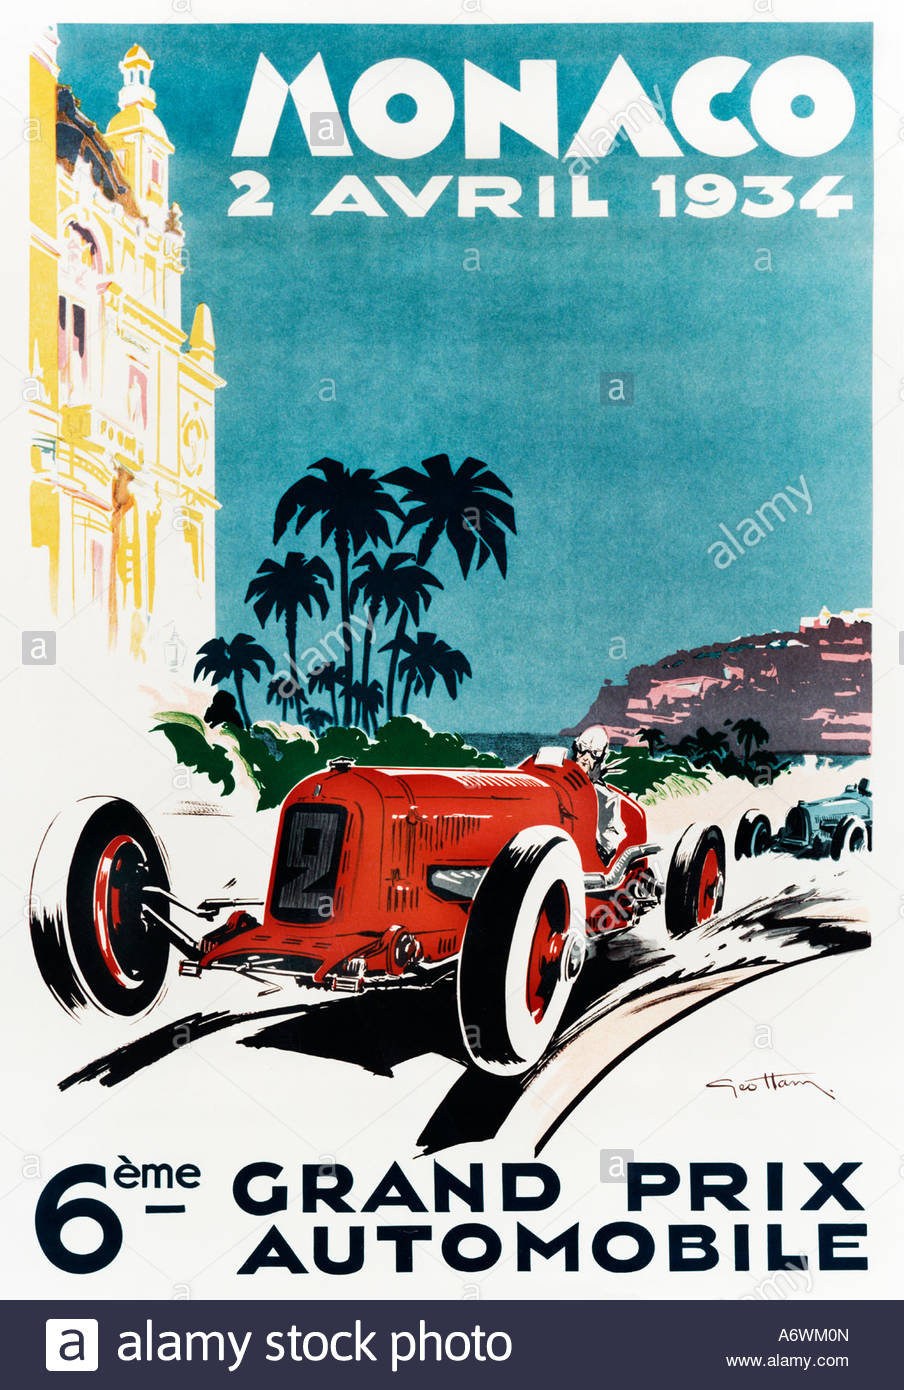 Monaco Grand Prix 1934, Poster for the 6th Monte Carlo race with the red  Maserati 8C/M driven by Lord Howe ahead of a blue Bugatti